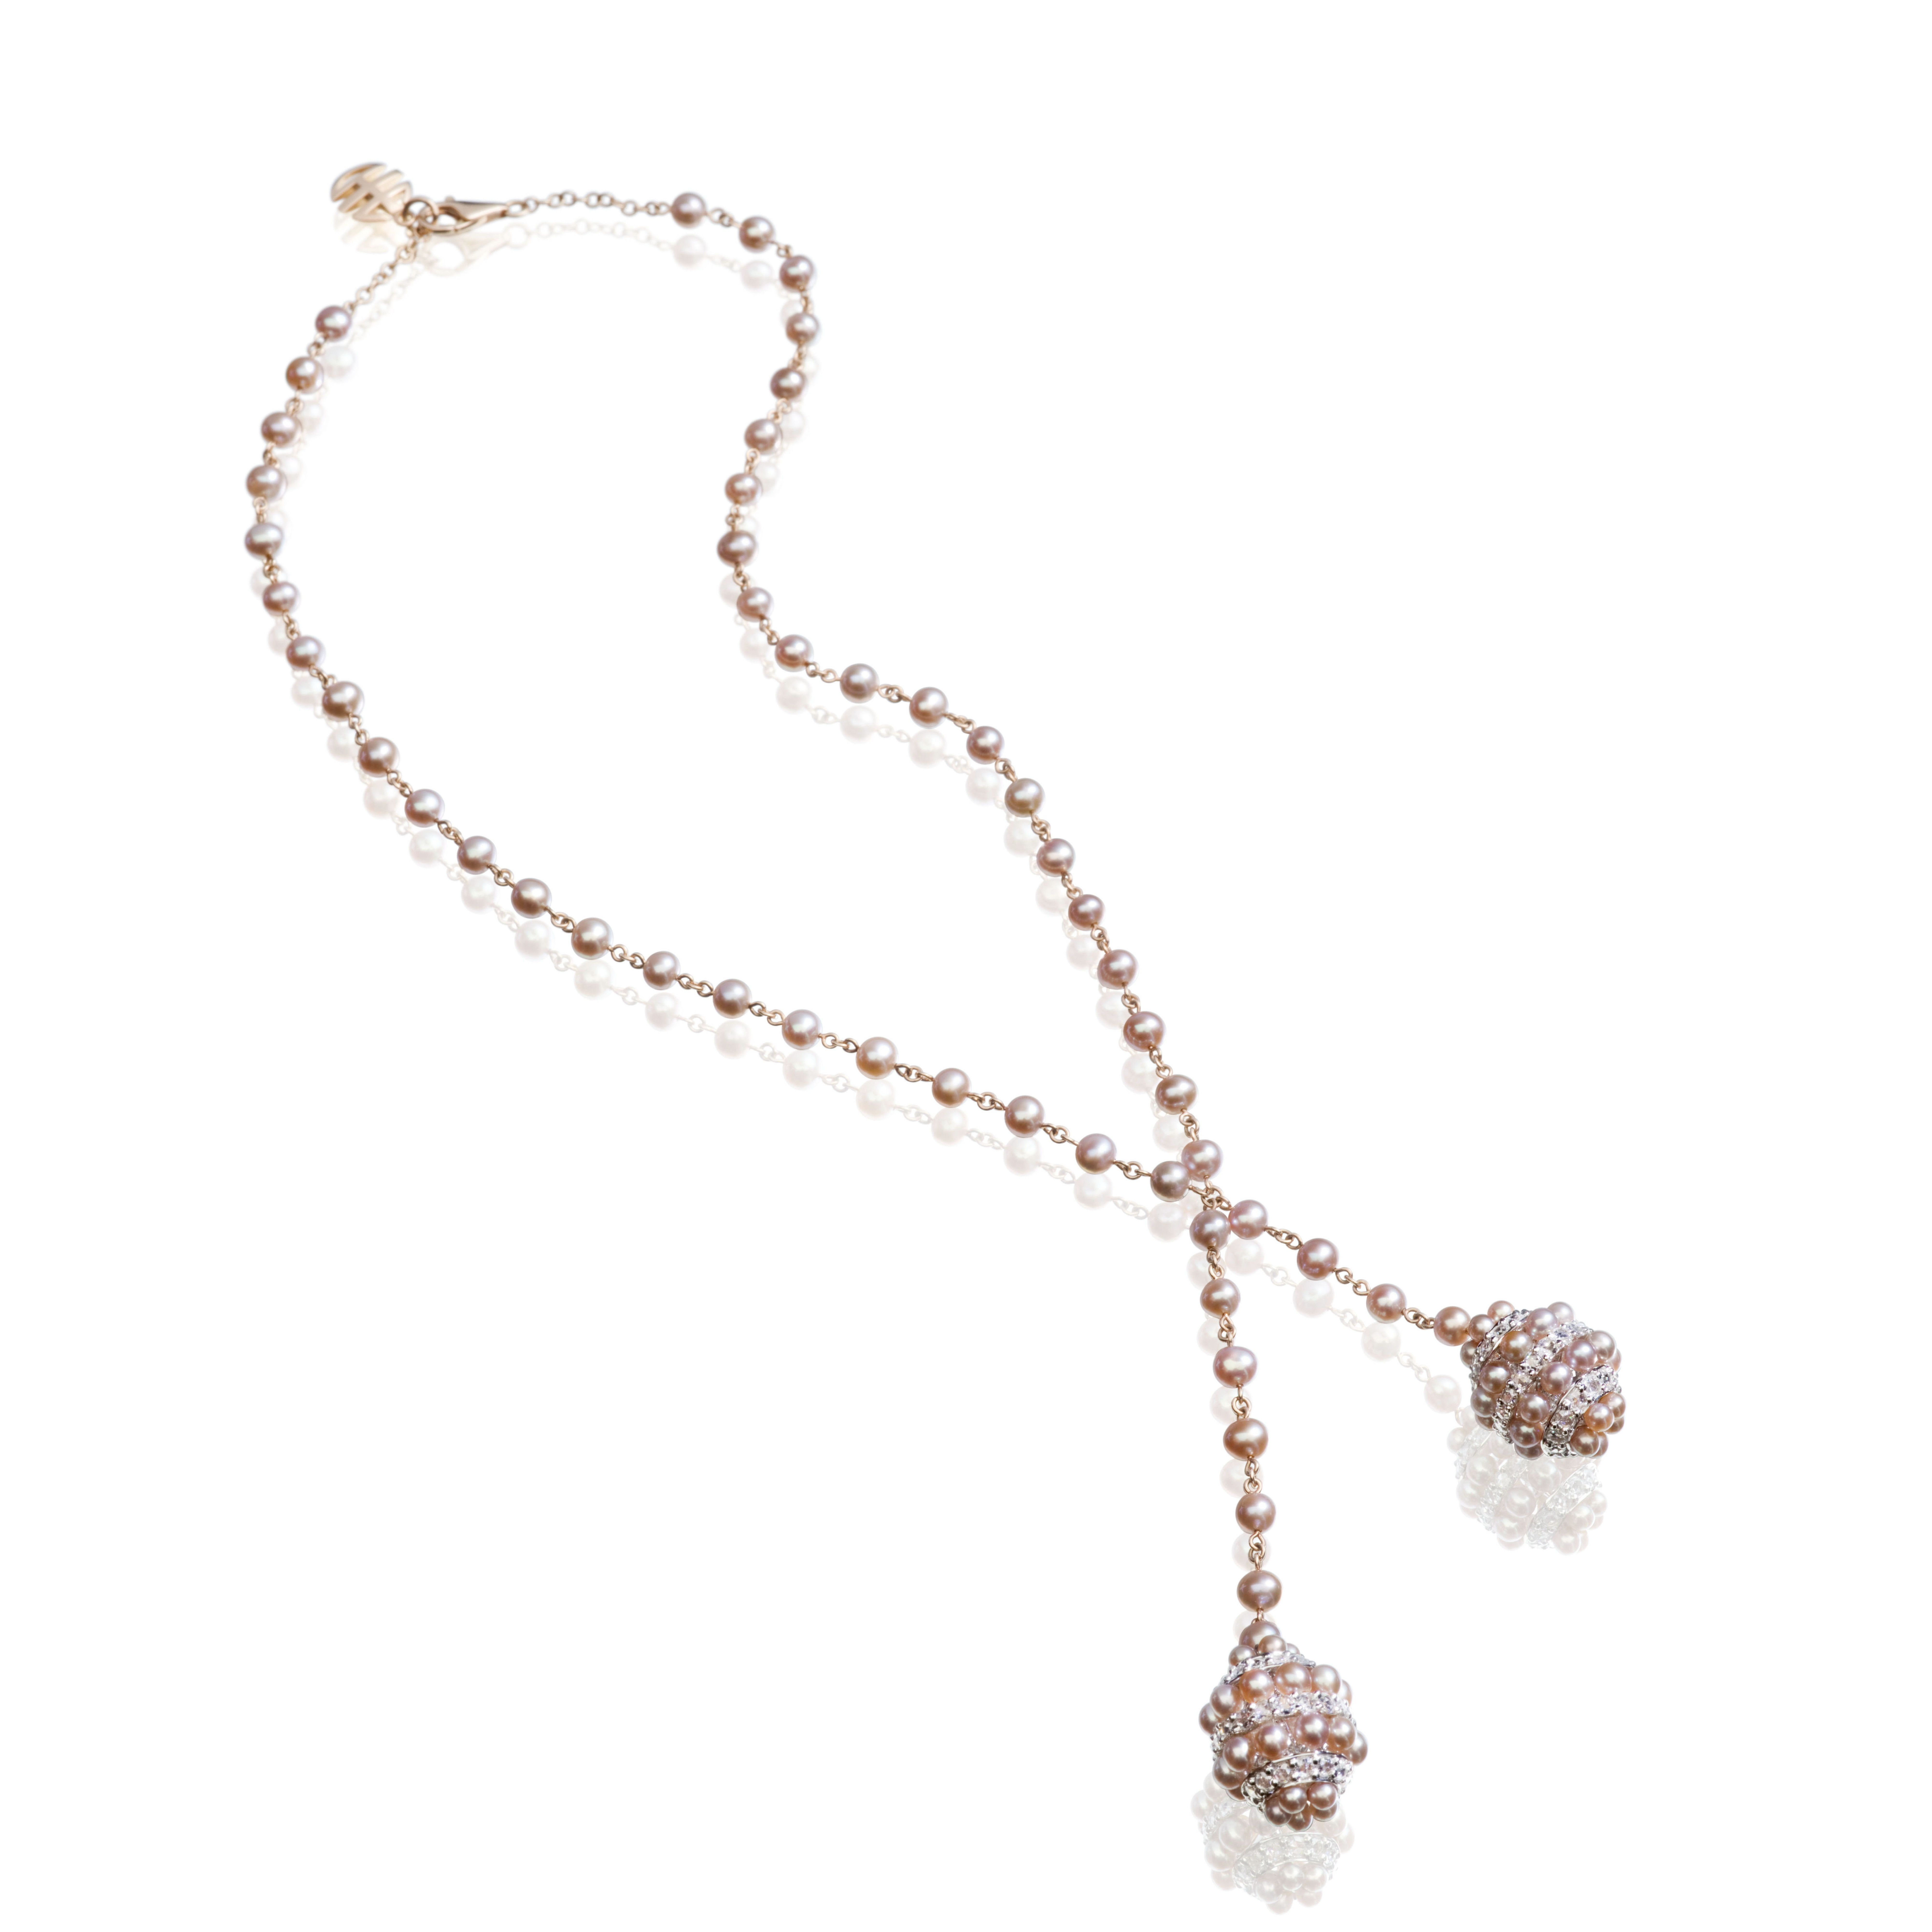 Pink gold nacklace with small pearls and boules of violet freshwater pearls and white sapphires. Garbo collection.